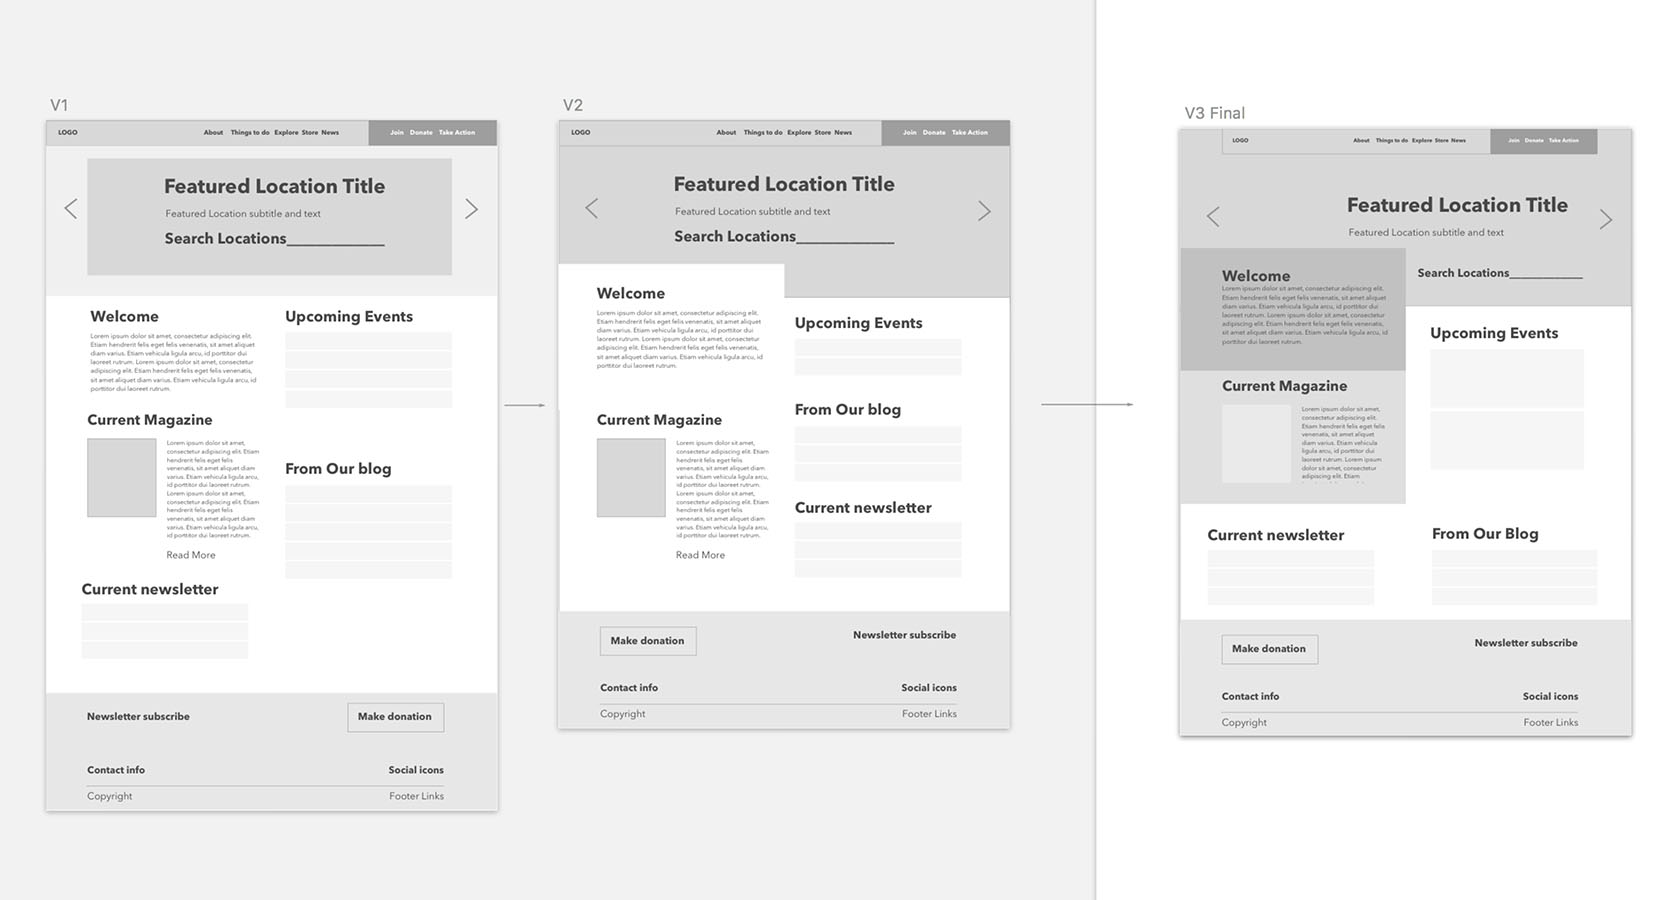 redesigned website pages, part of a website redesign process